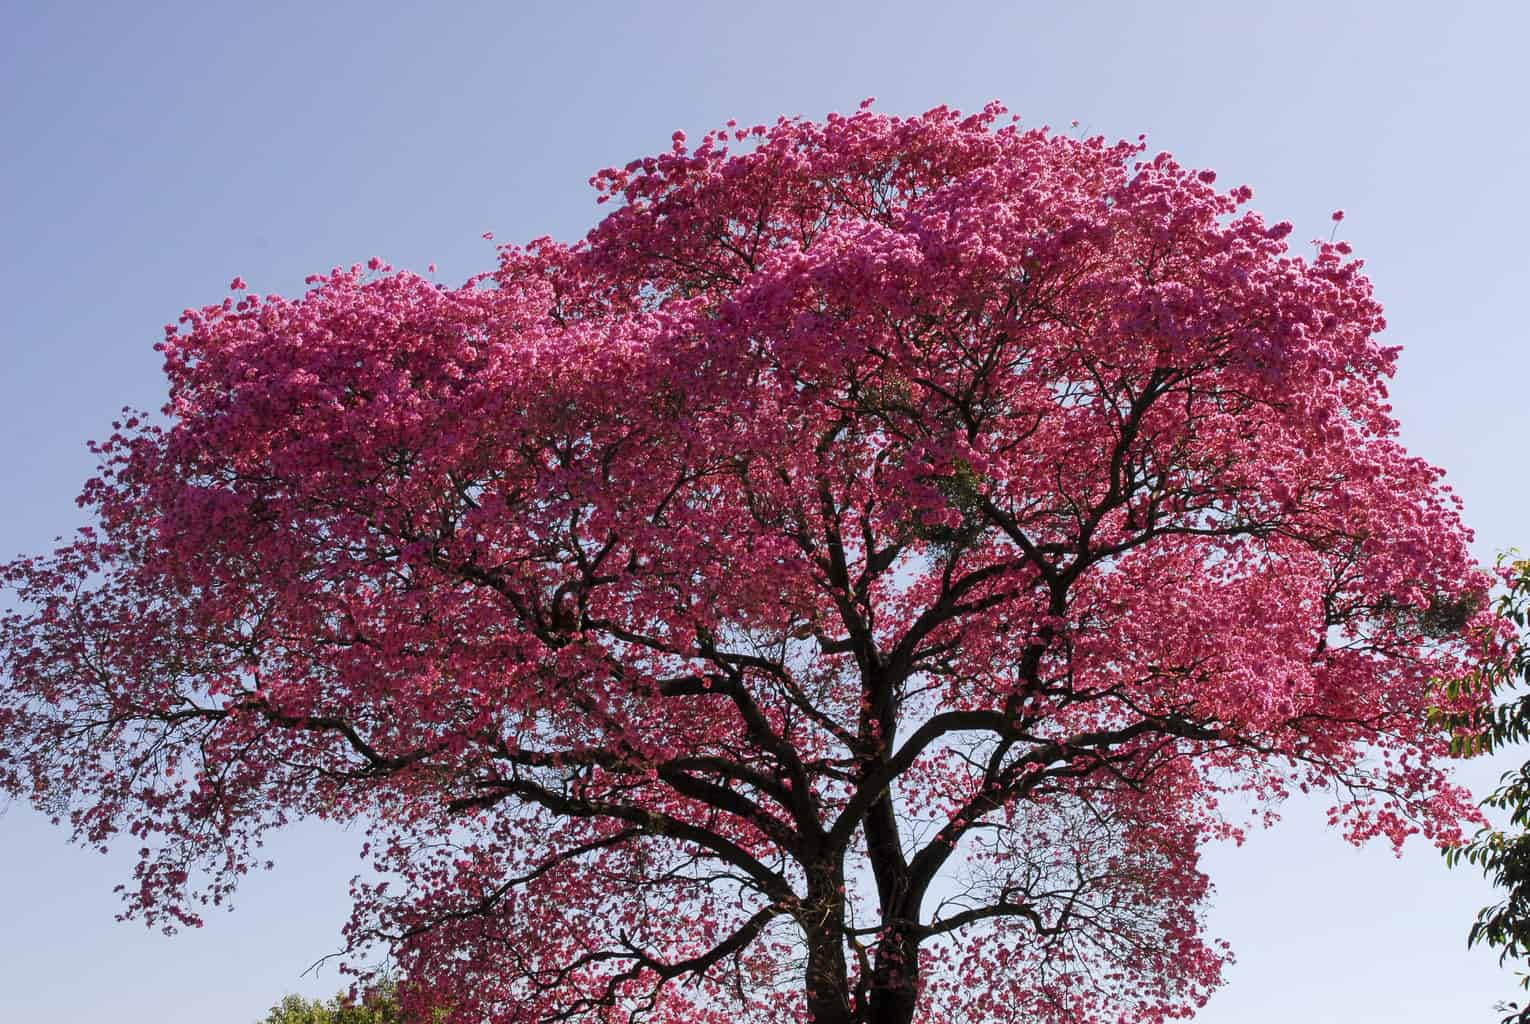 The magic Lapacho tree from South America